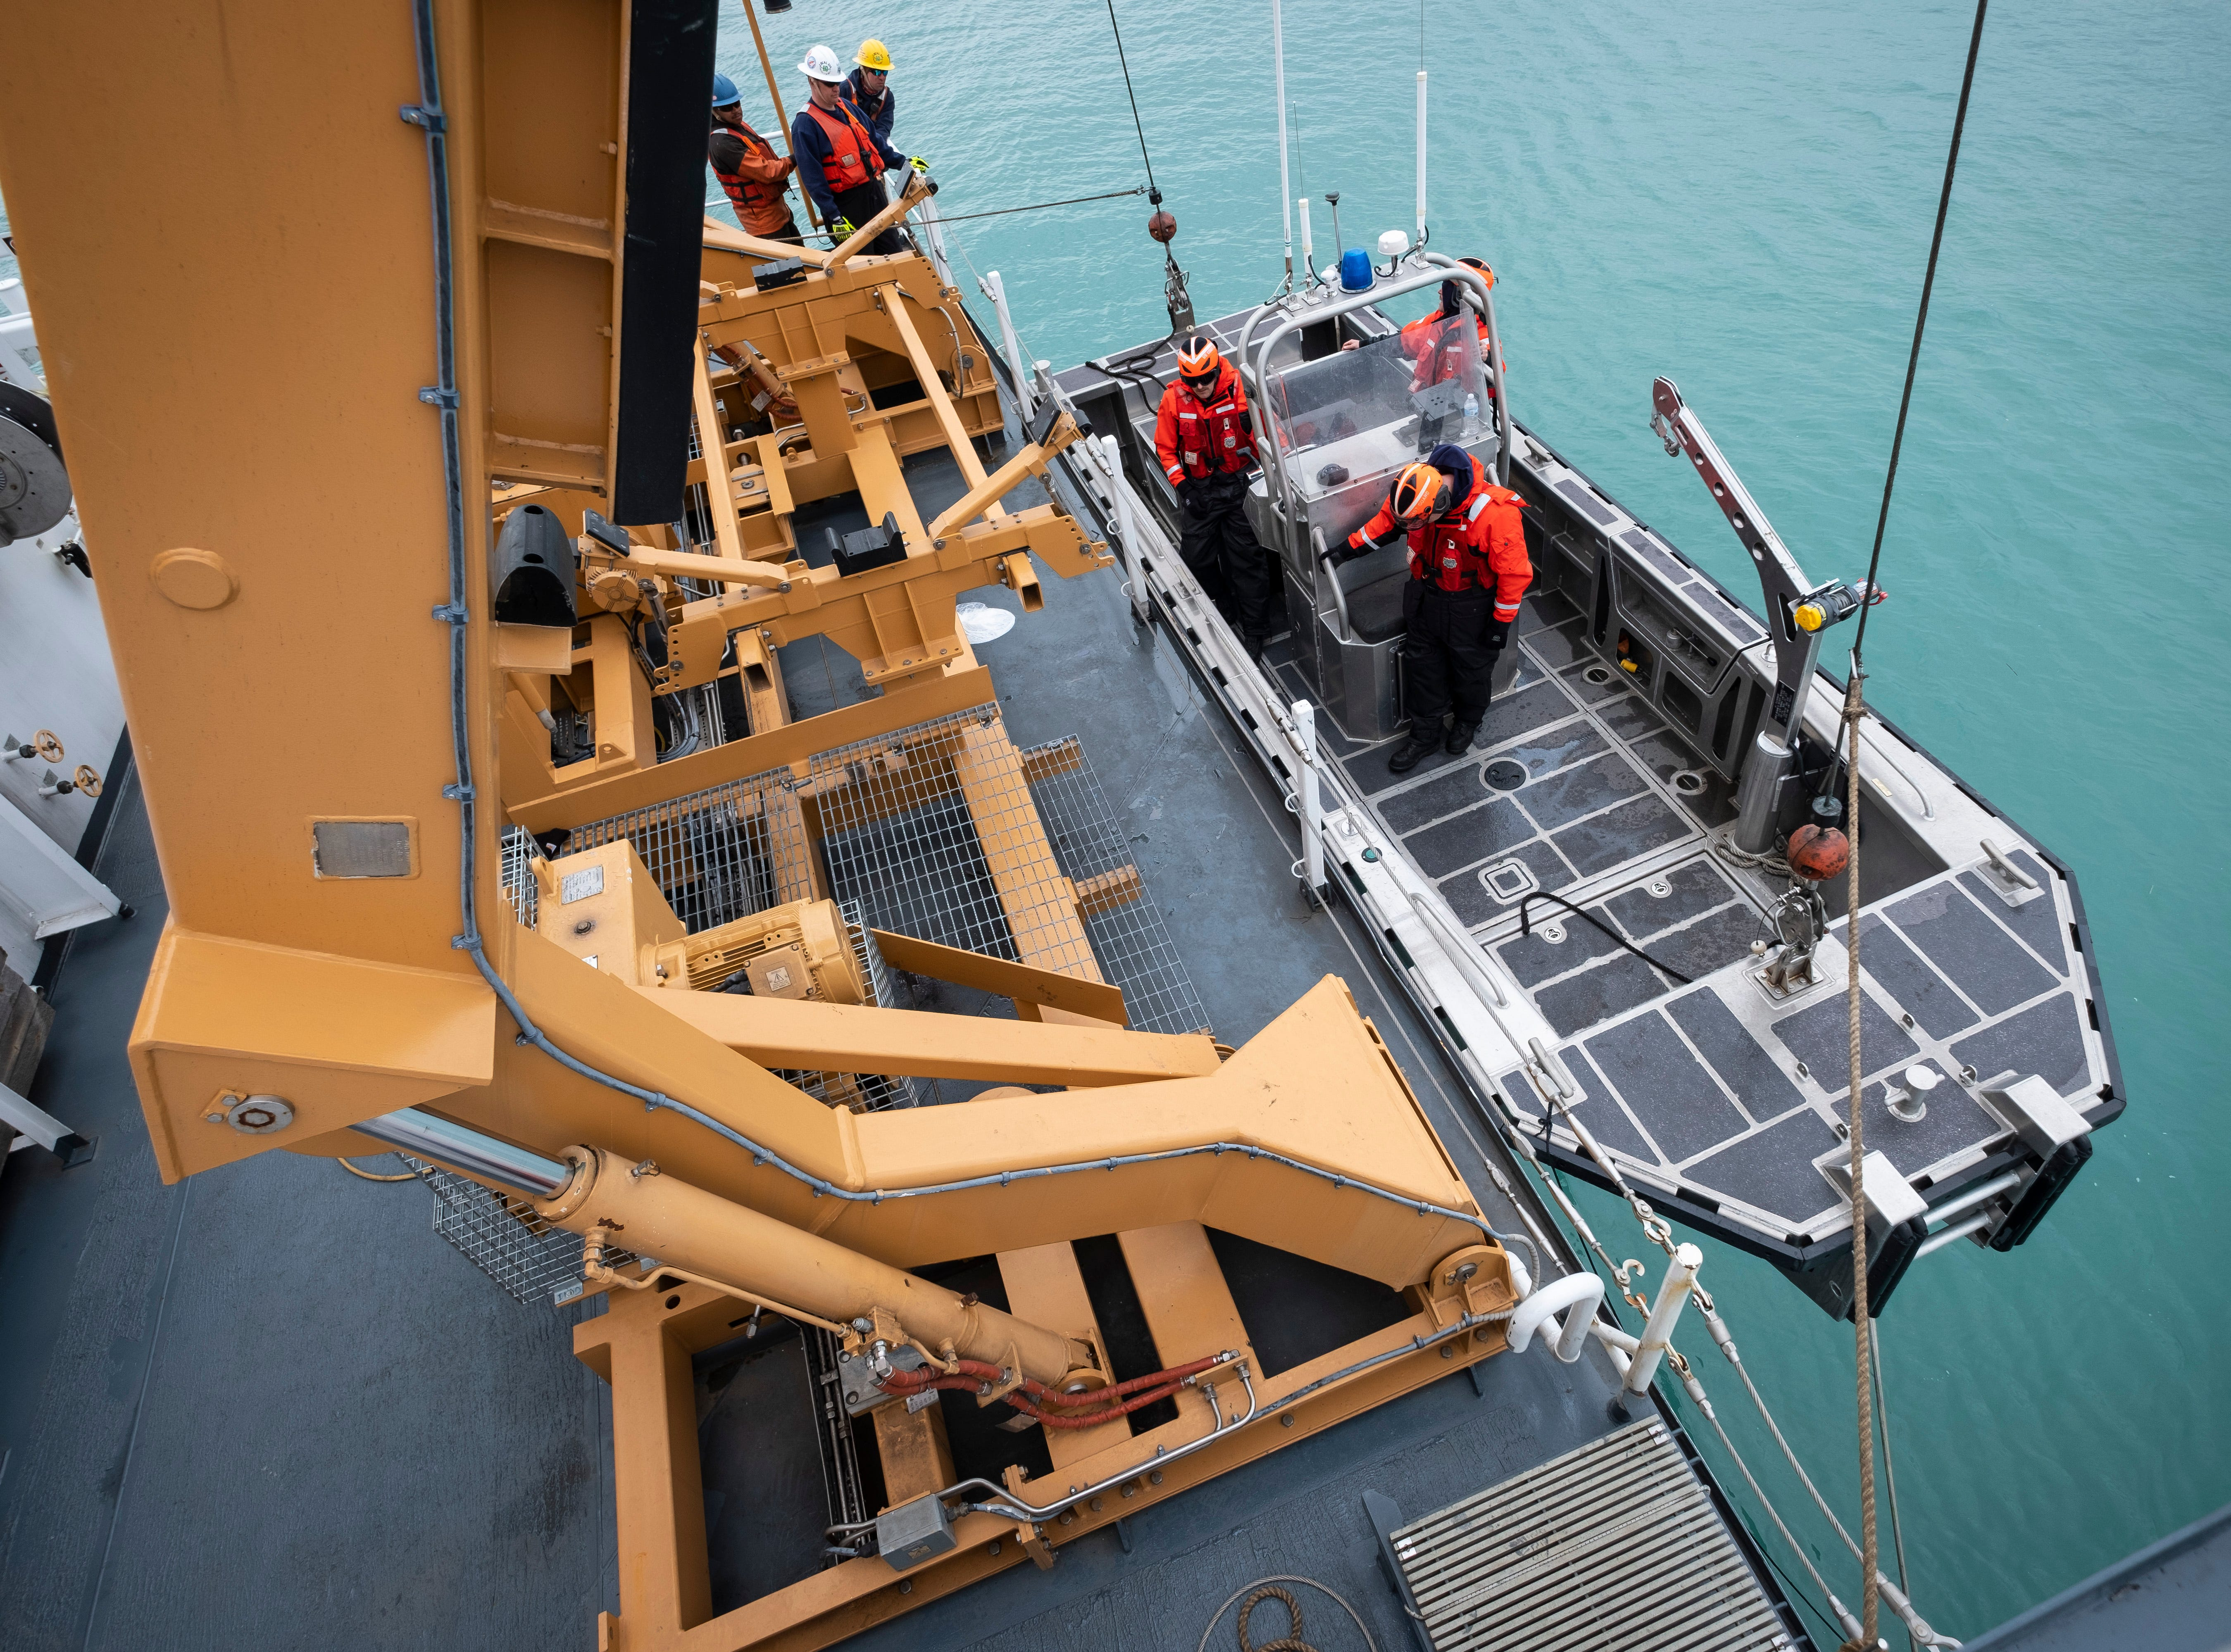 After completing their work early Thursday, April 25, 2019, several of the Hollyhock's crewmembers and the ship's ATON boat are lifted back aboard.